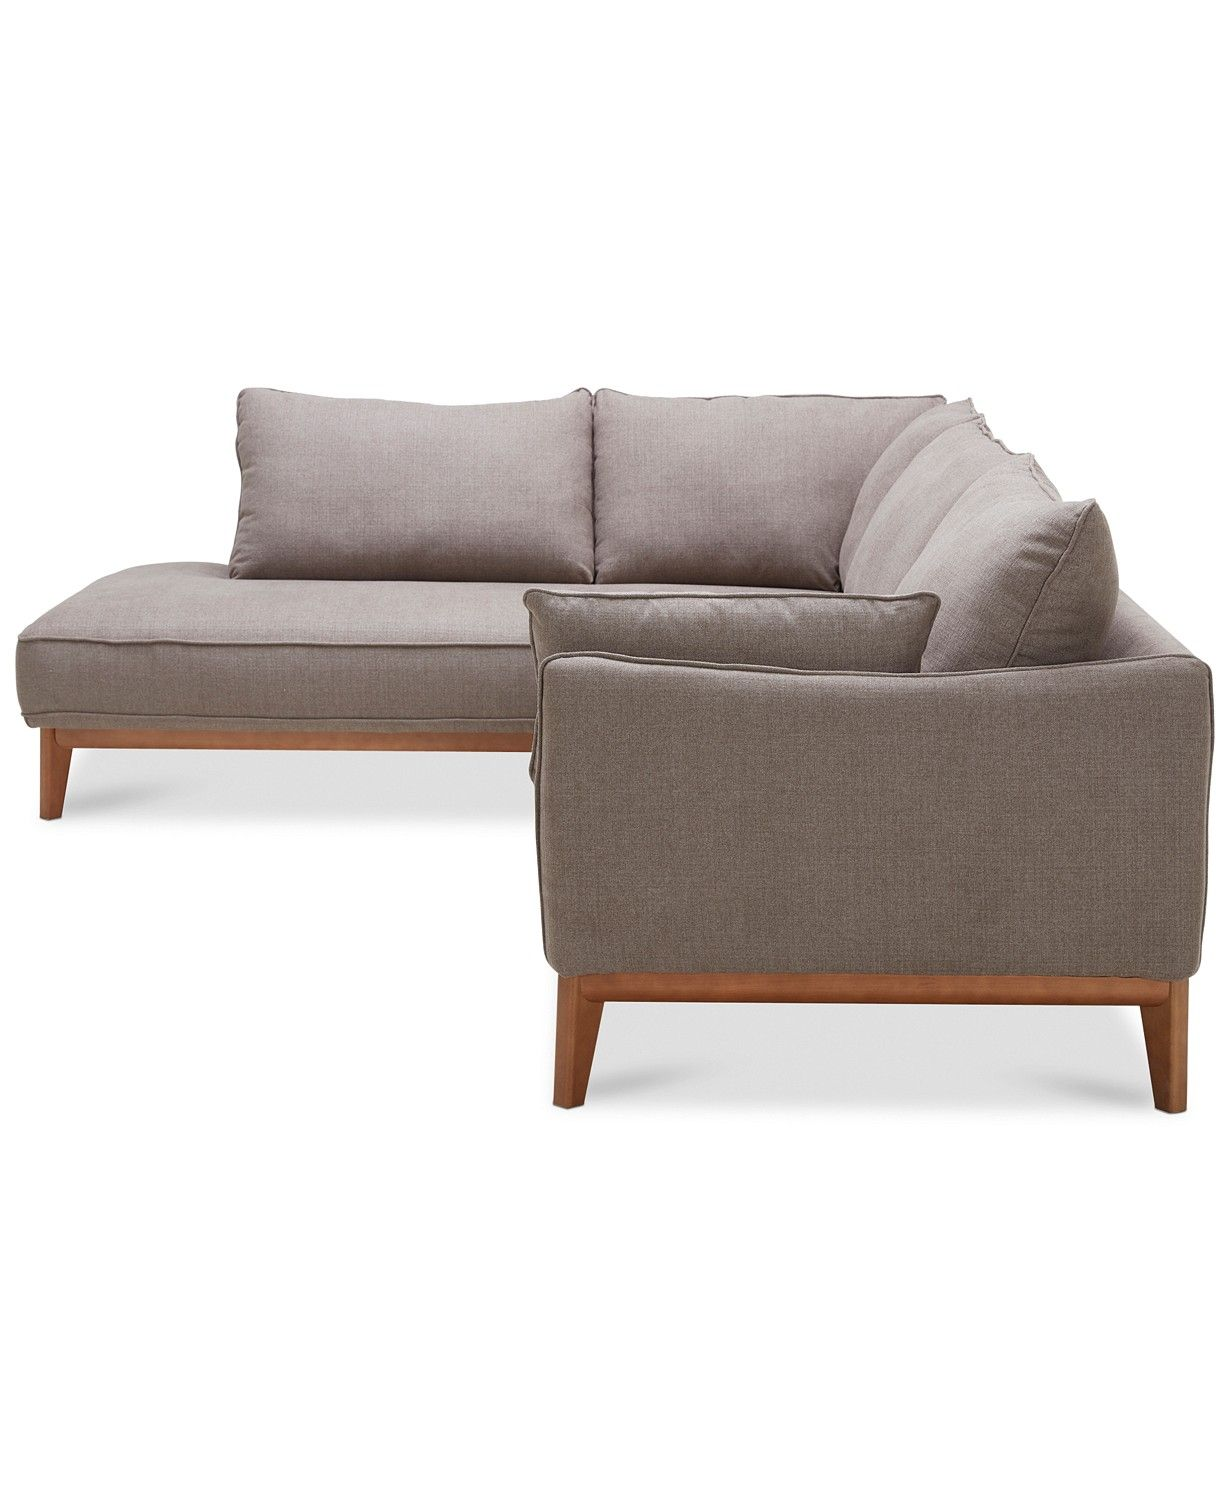 Stupendous Jollene 113 2 Pc Sectional Created For Macys Decor Pabps2019 Chair Design Images Pabps2019Com